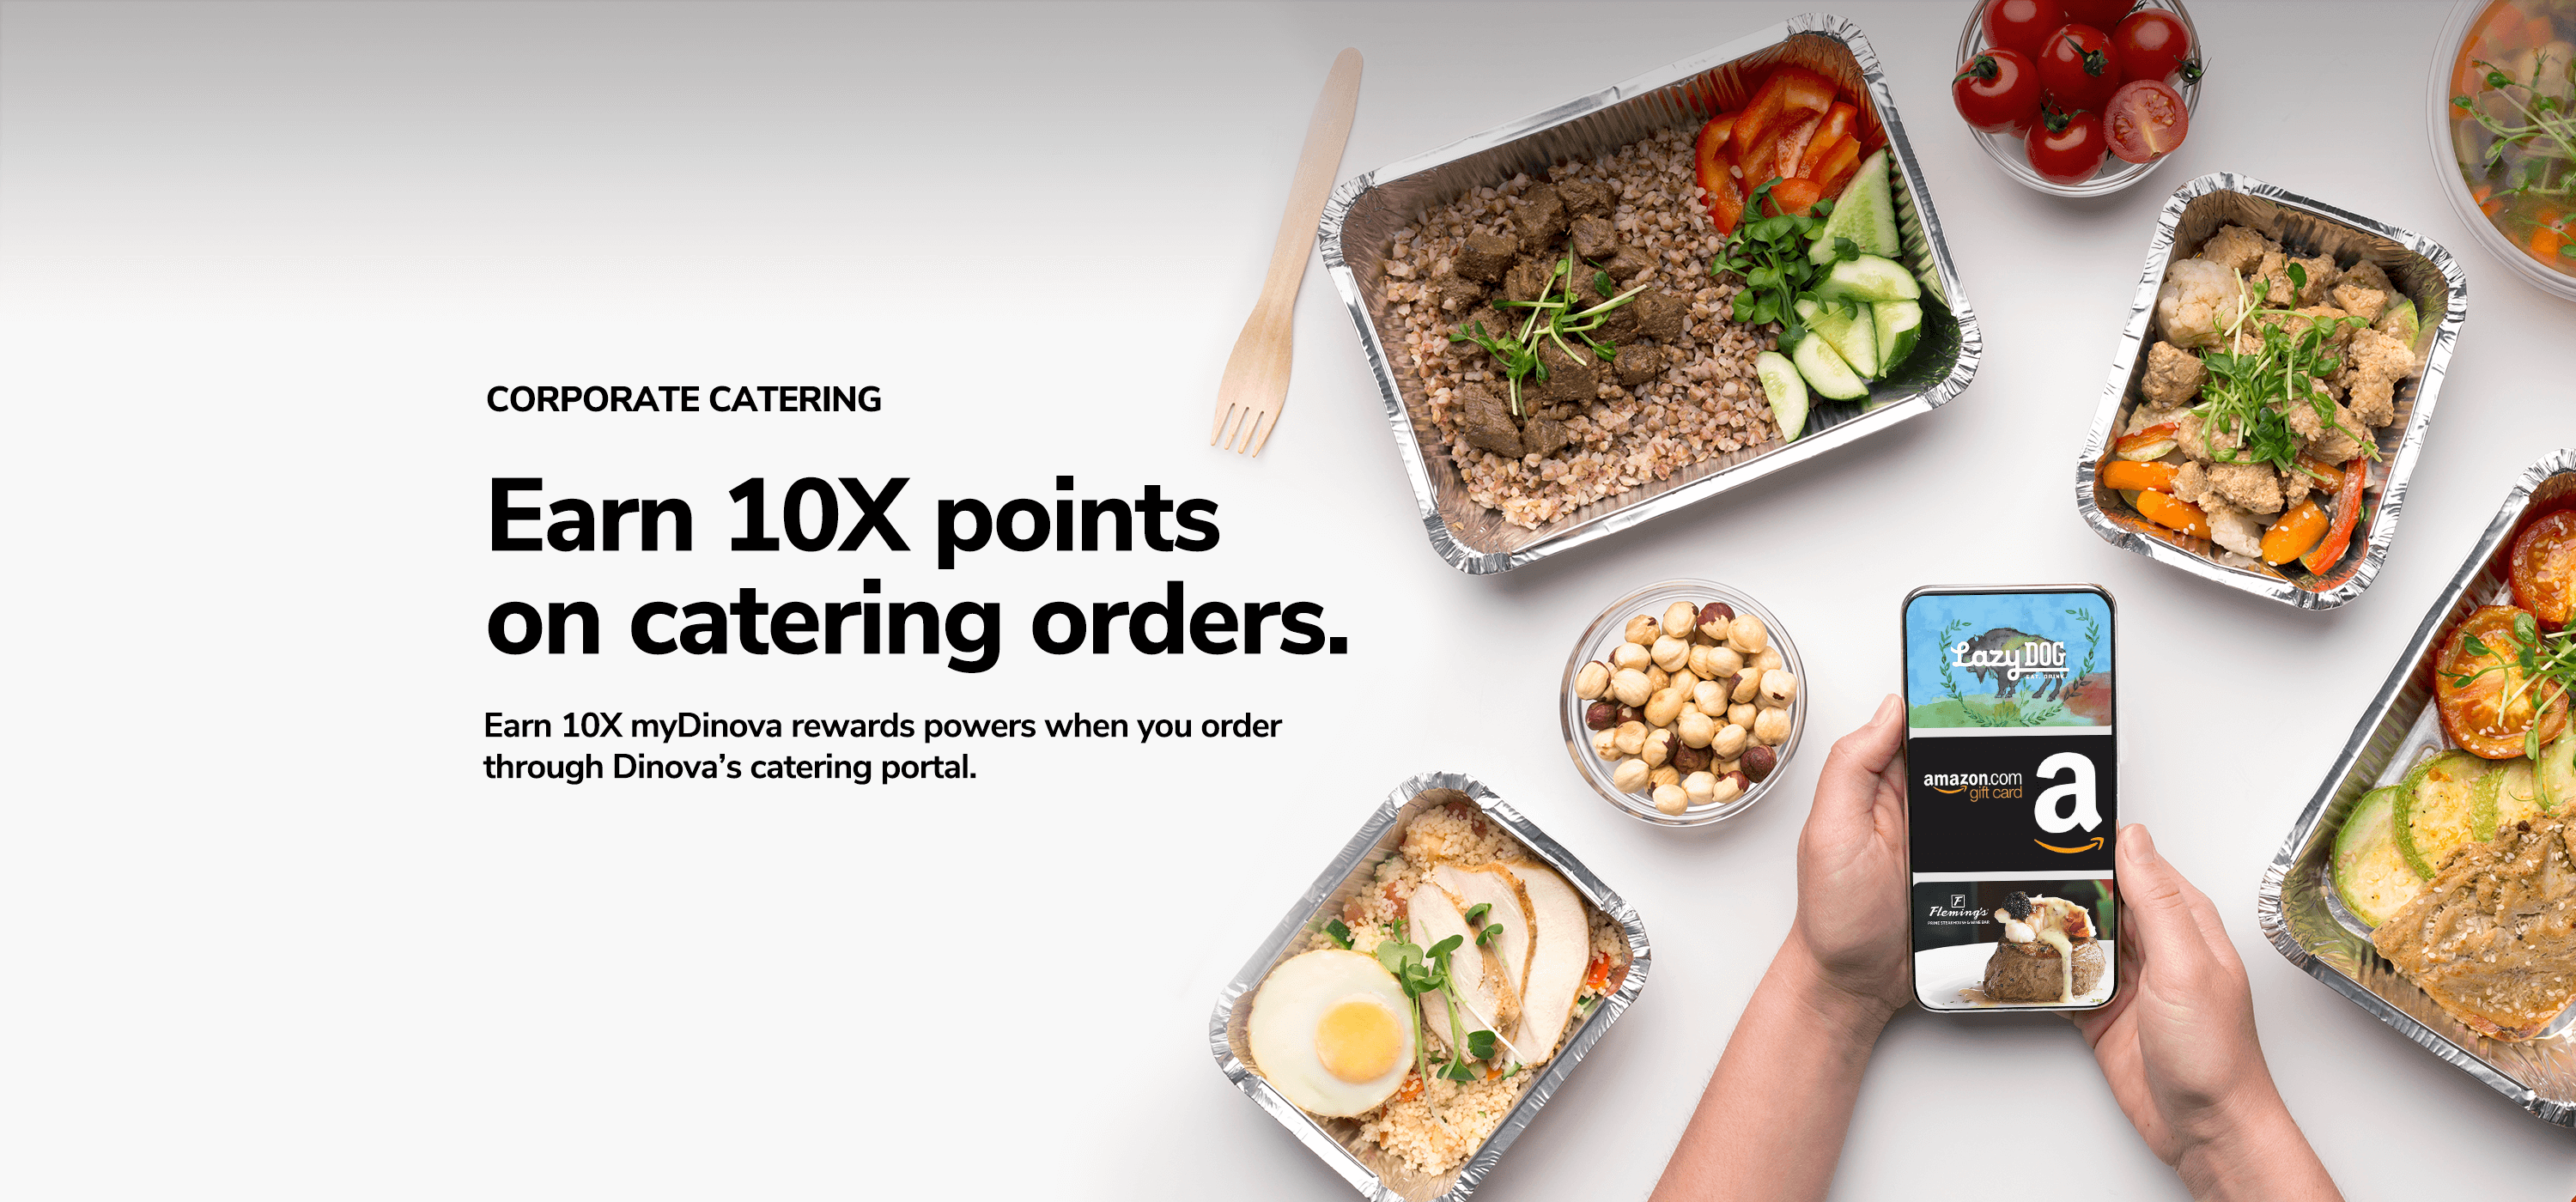 Earn 10X points on catering orders. Dinova Image